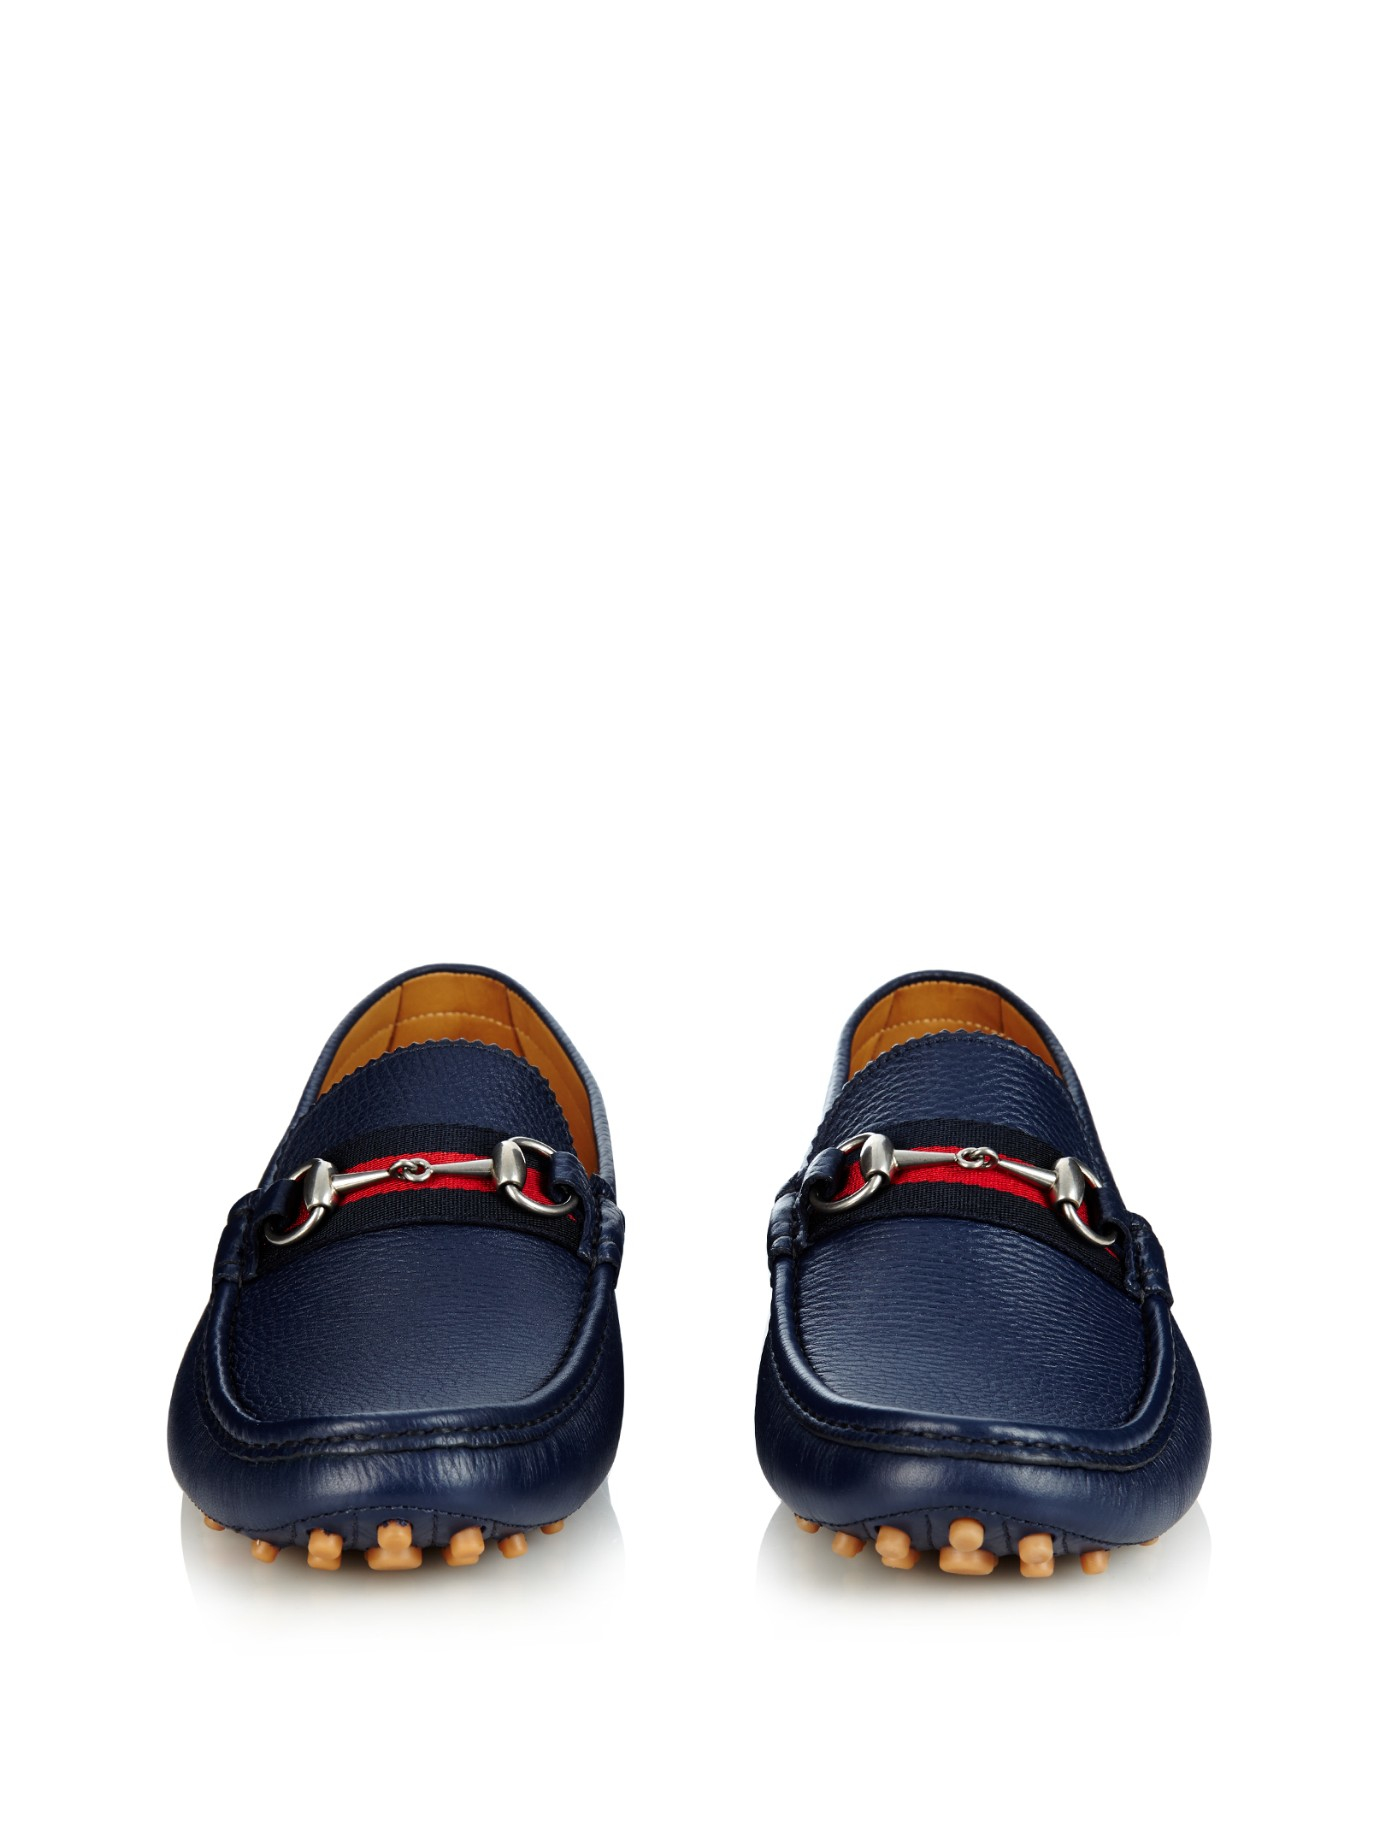 23716c72f69c0b Gucci Damo Leather Loafers in Blue for Men - Lyst